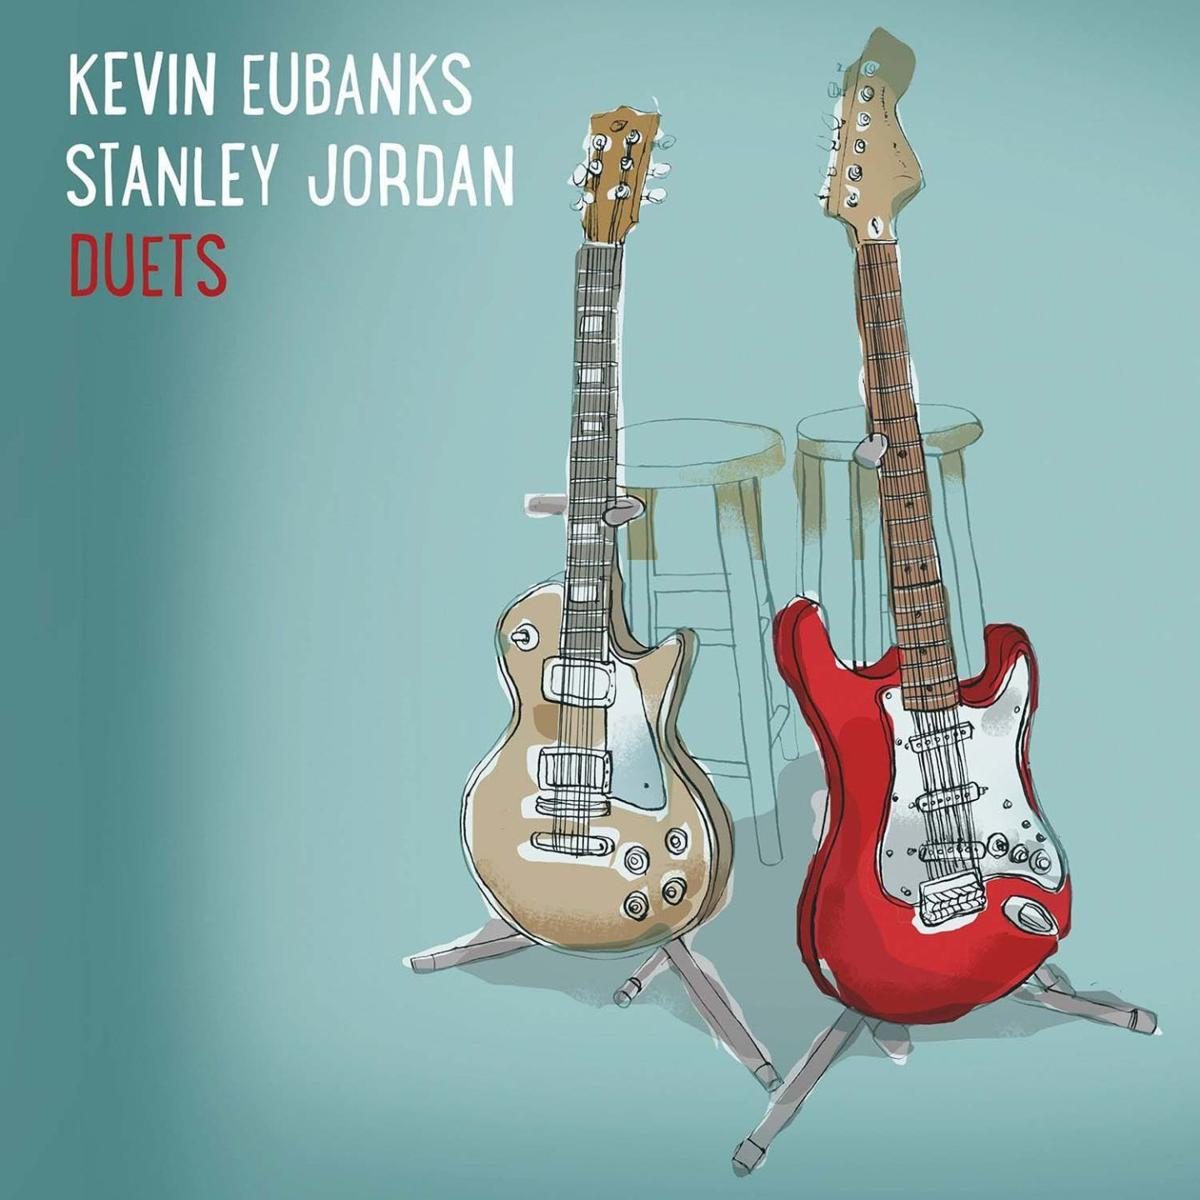 Kevin Eubanks and Stanley Jordan, 'Duets,' Mack Avenue Records